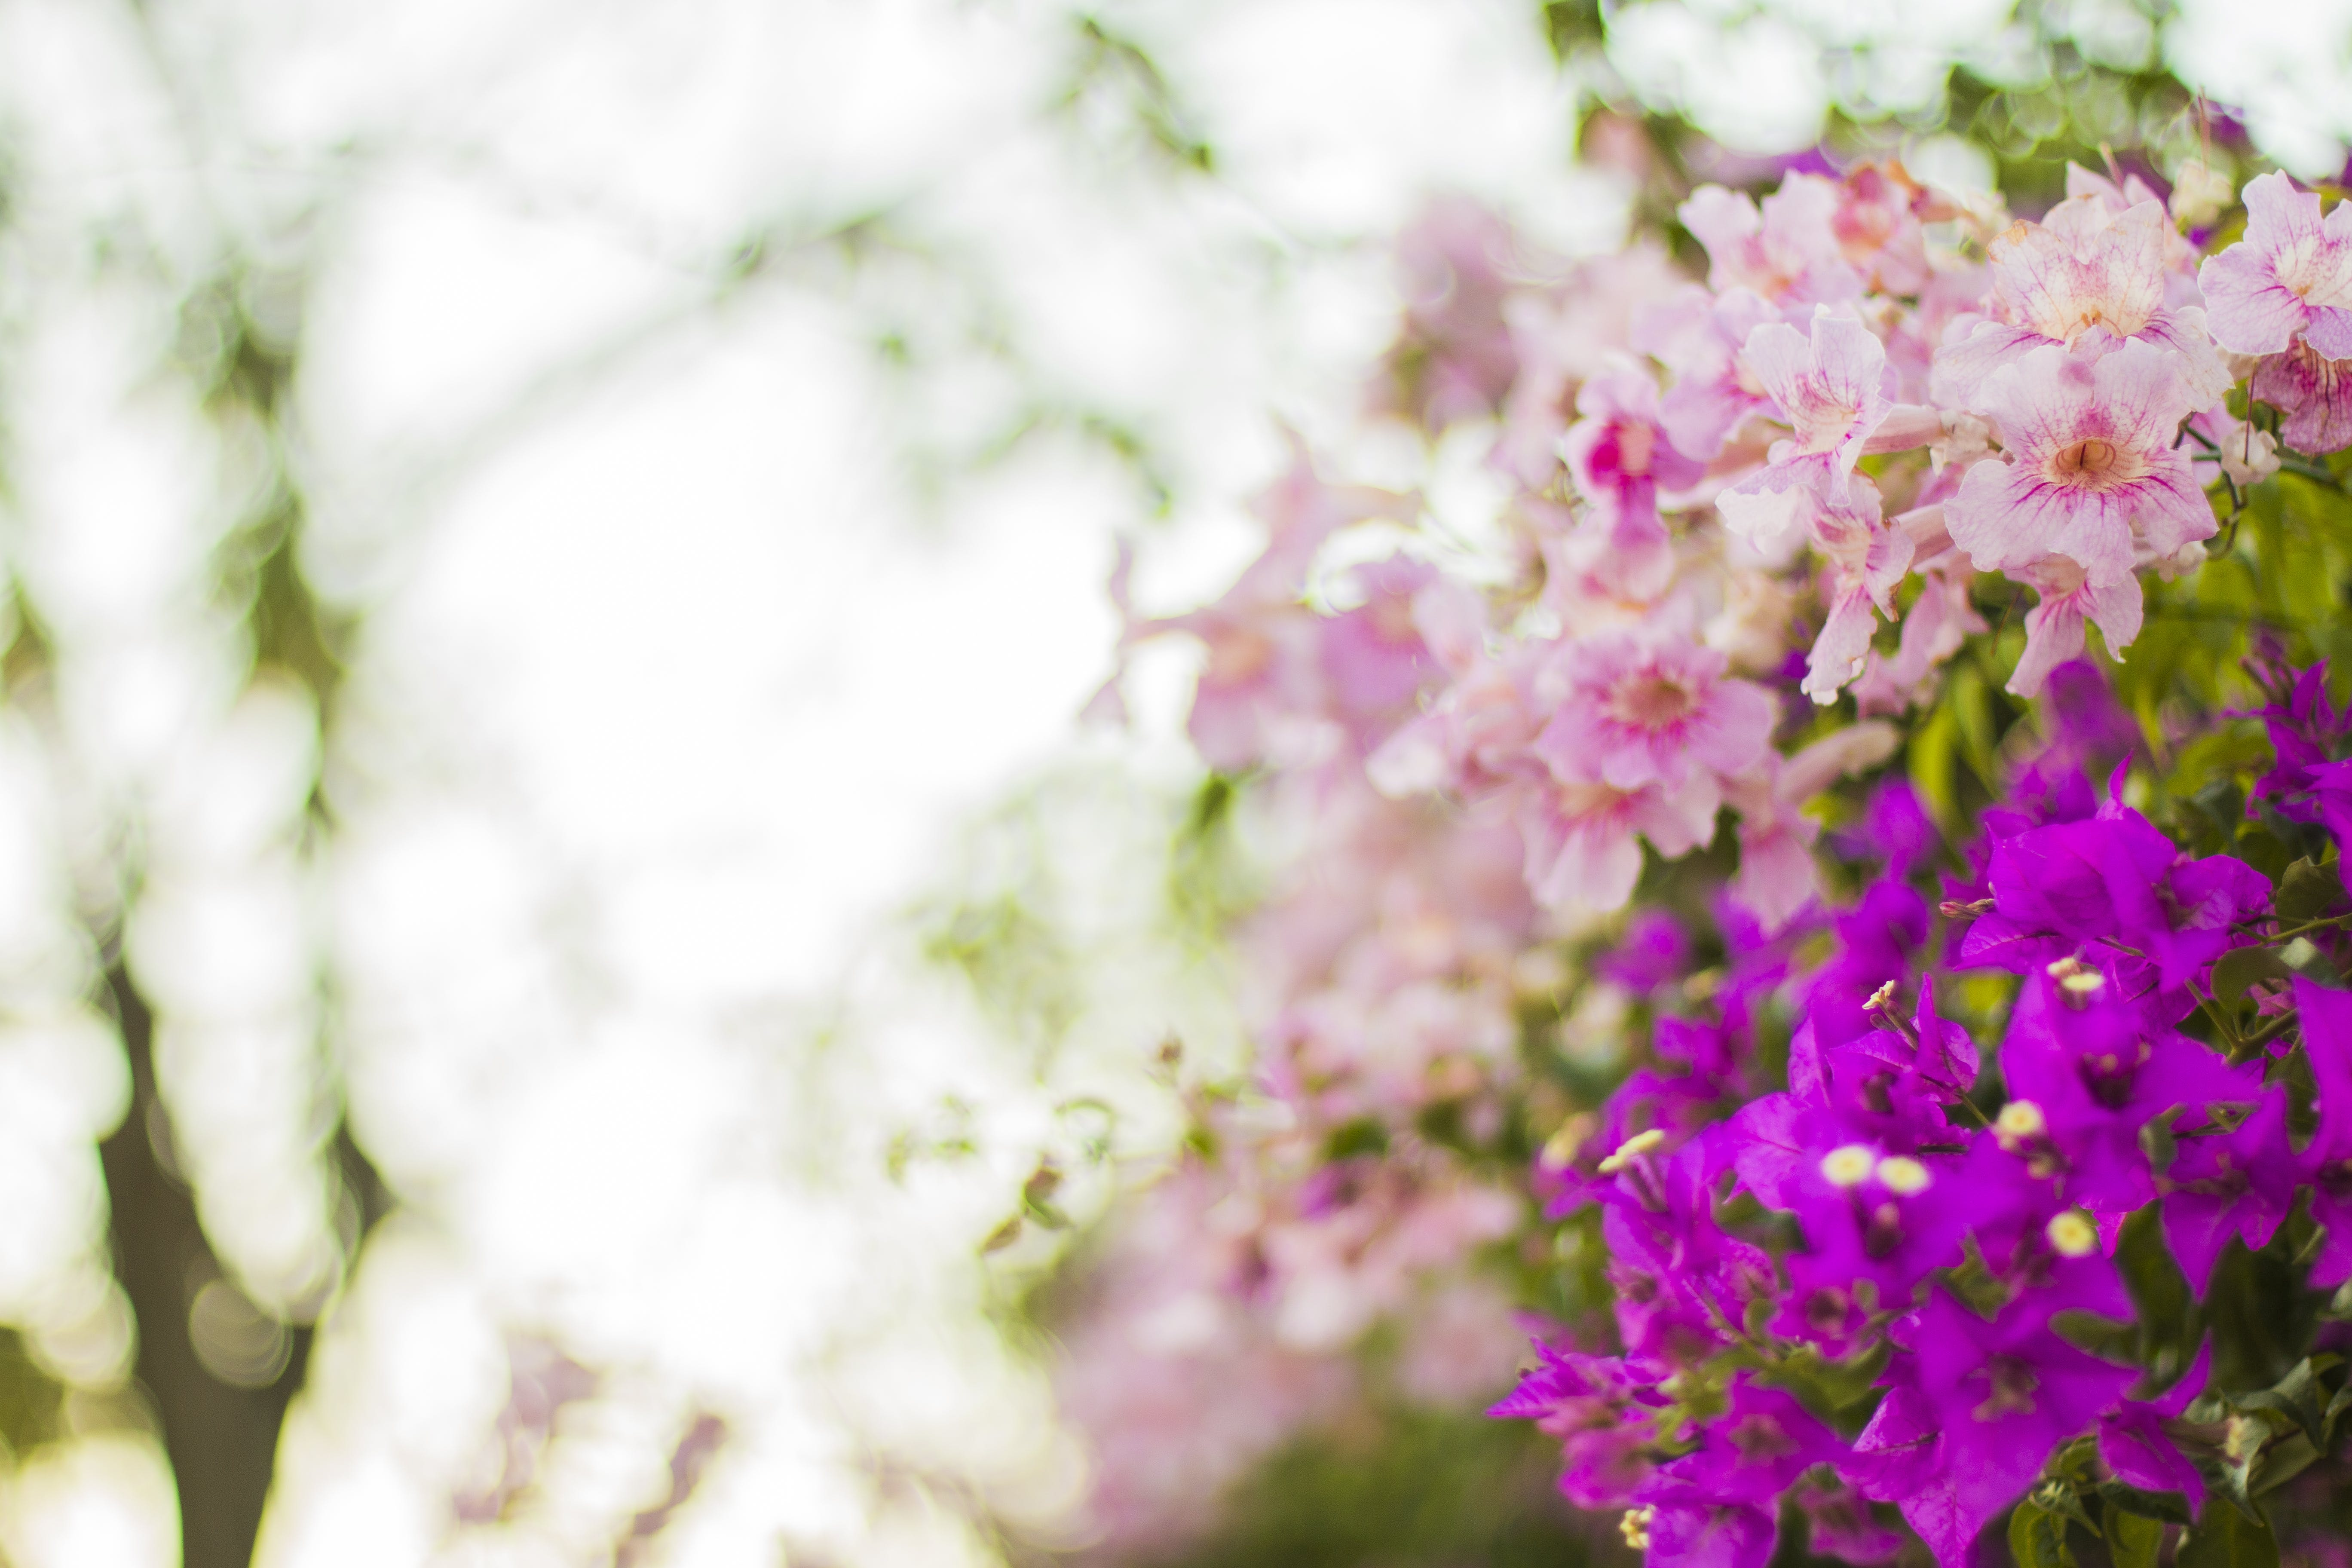 Purple and Pink Flowers in Selective Focus Photography